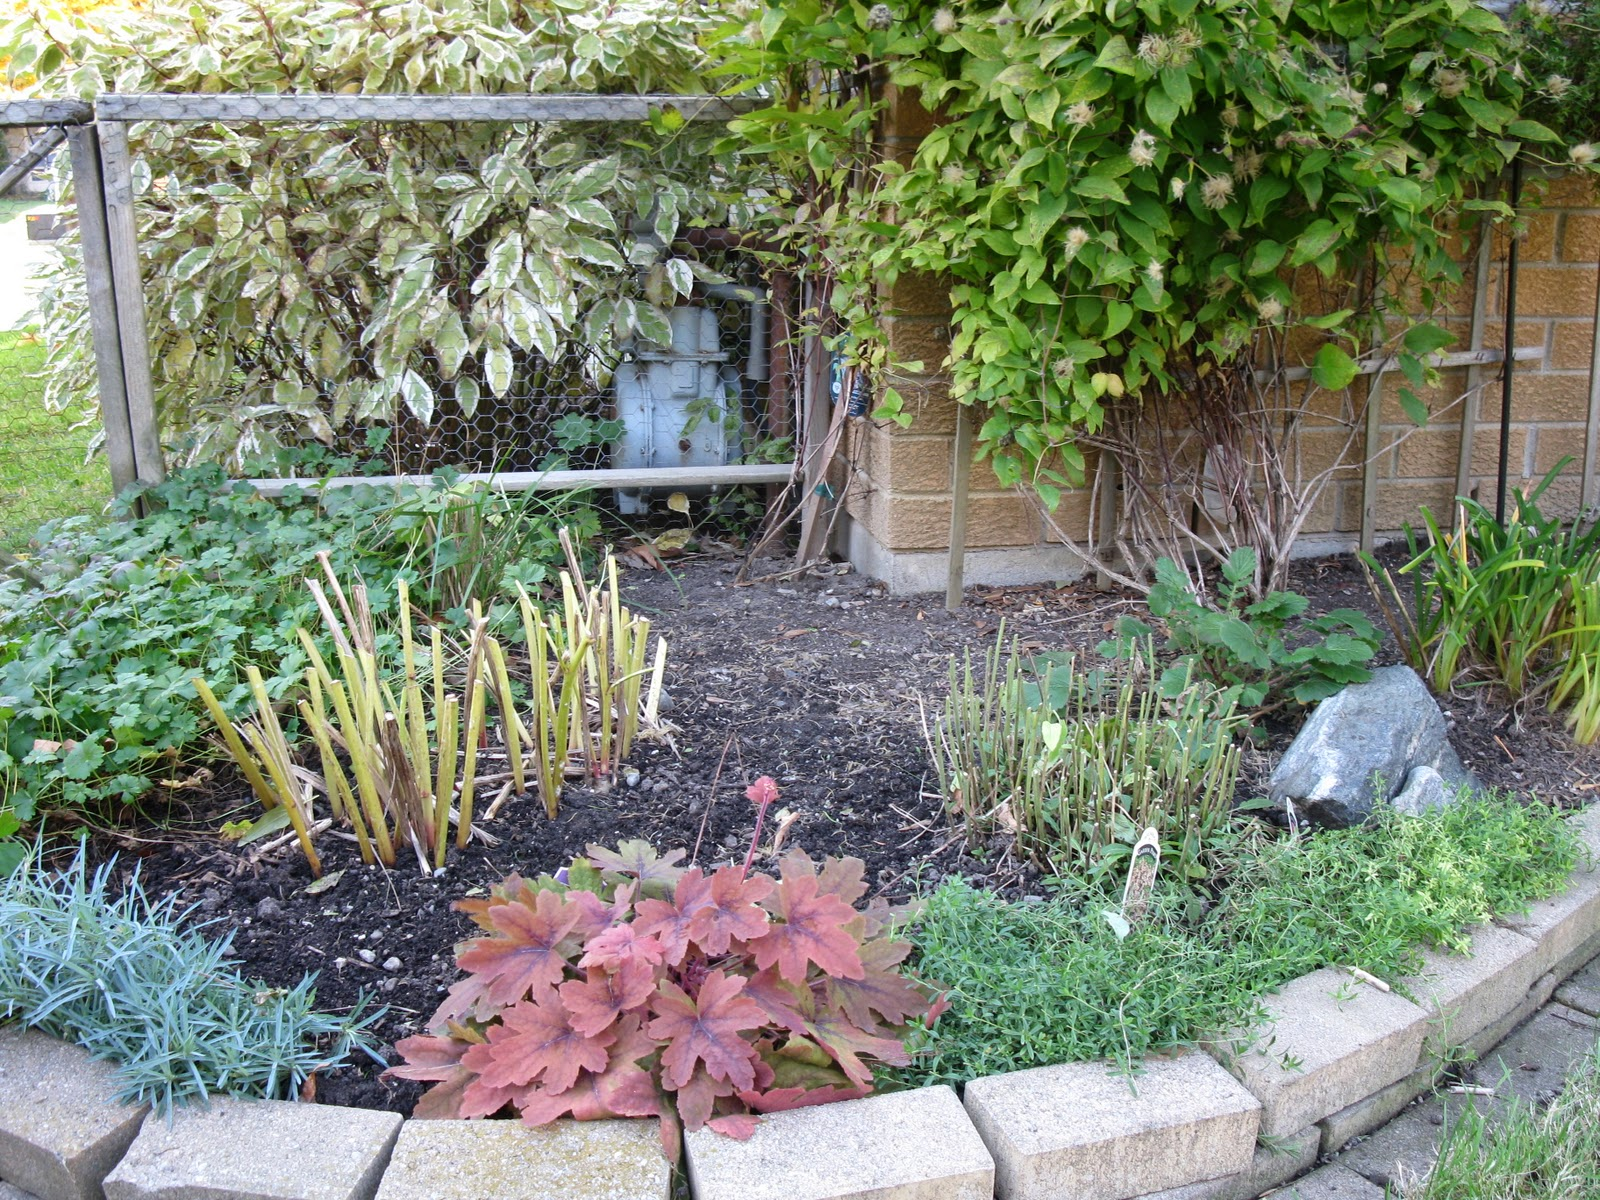 White swan homes and gardens check list for preparing your gardens for old man winter - Prepare garden winter ...